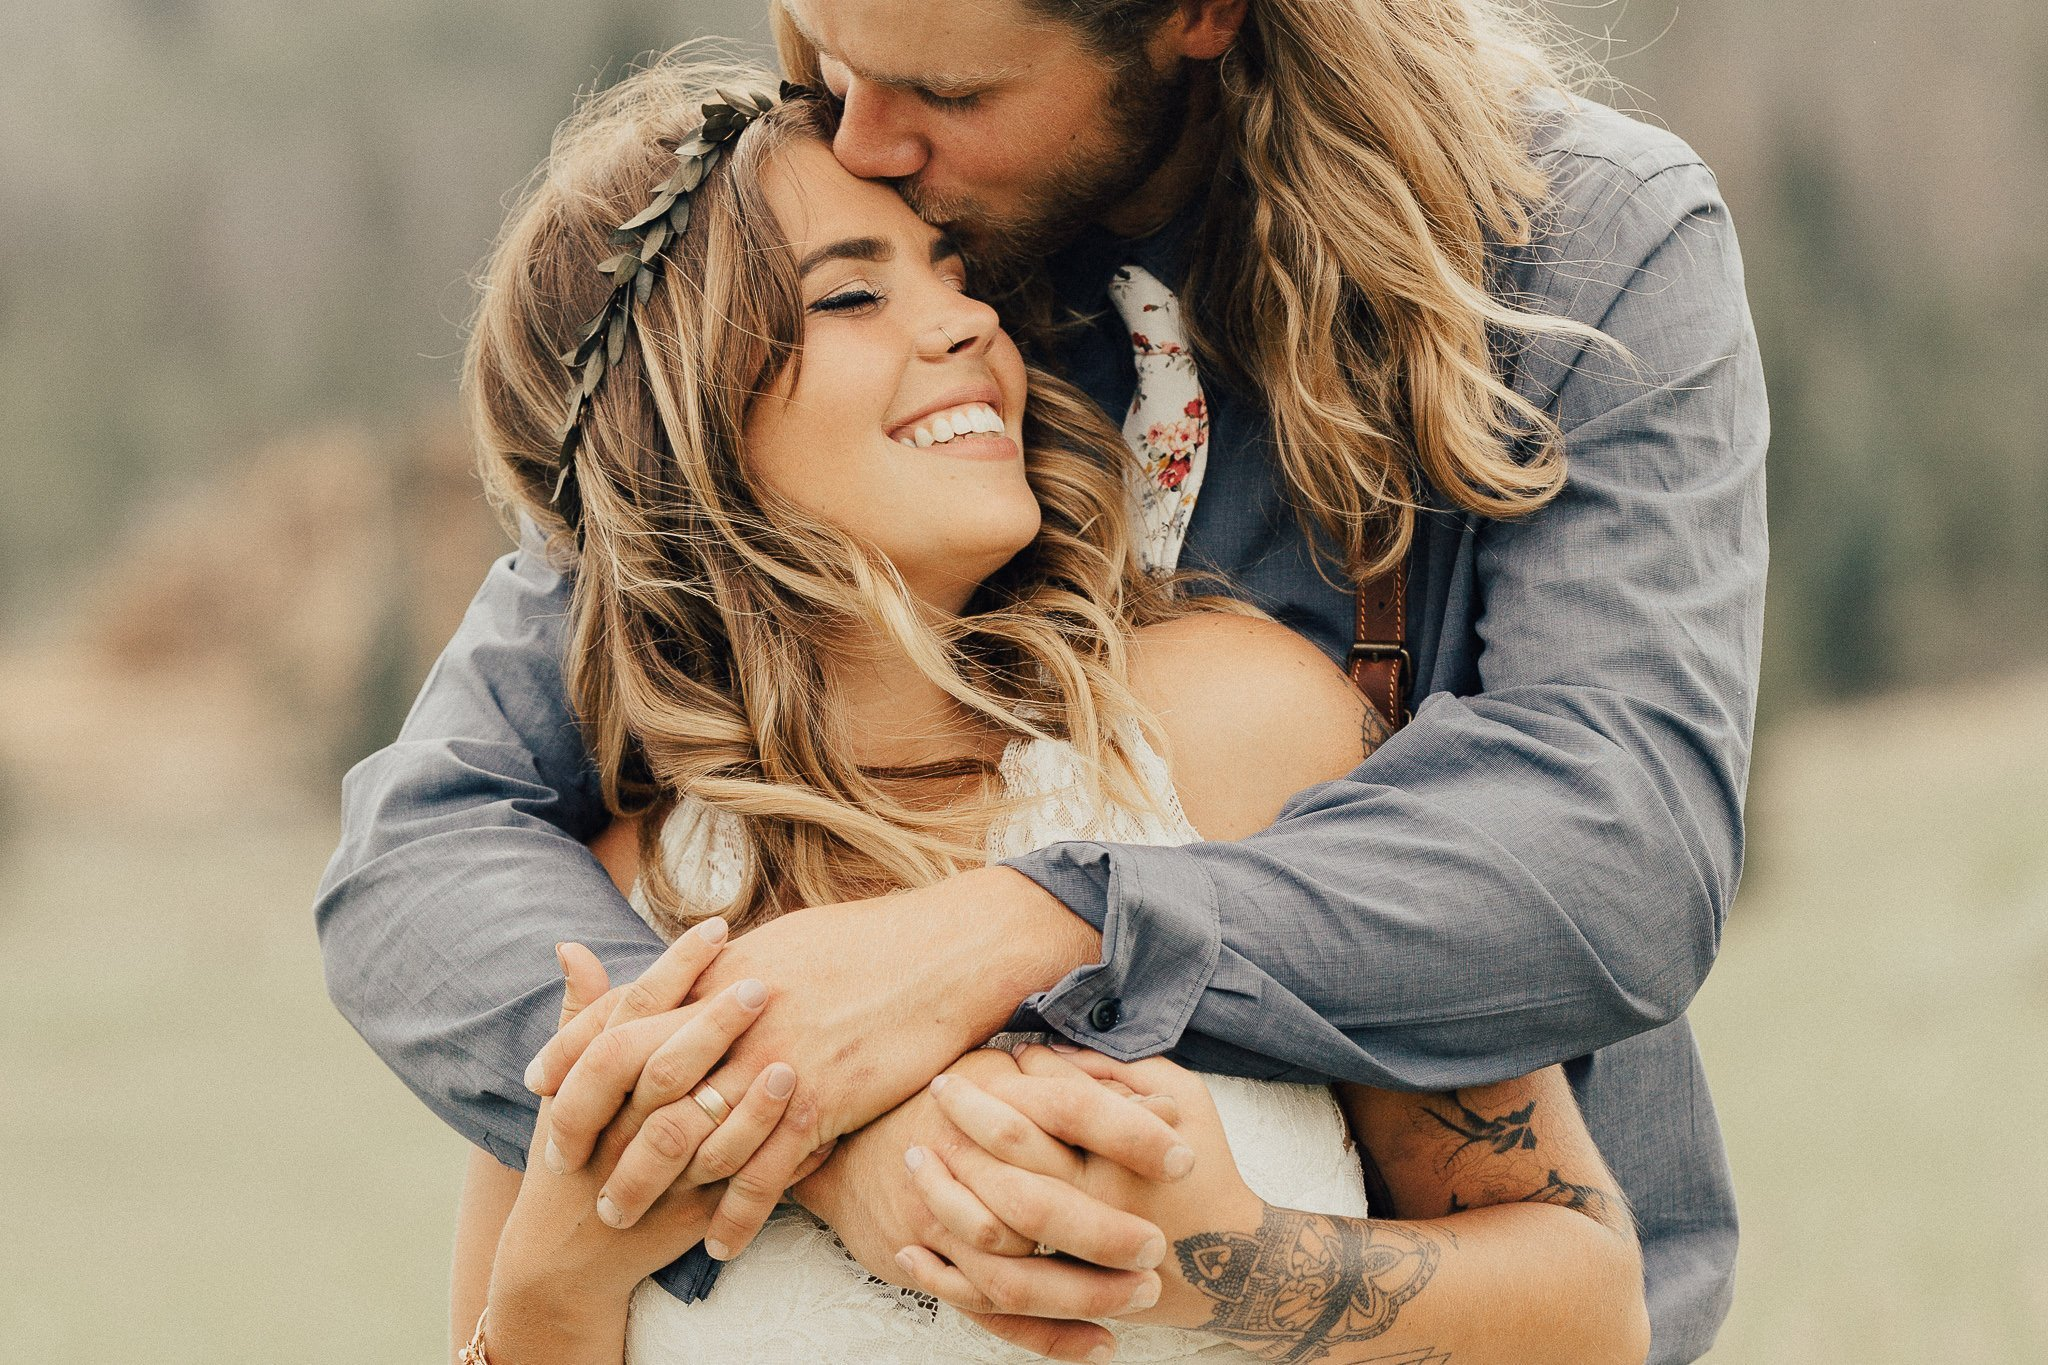 Colorado Mountain Weddings and Elopement Photographer, Justyna E Butler, Colorado wedding Photographer for Adventurous Couples